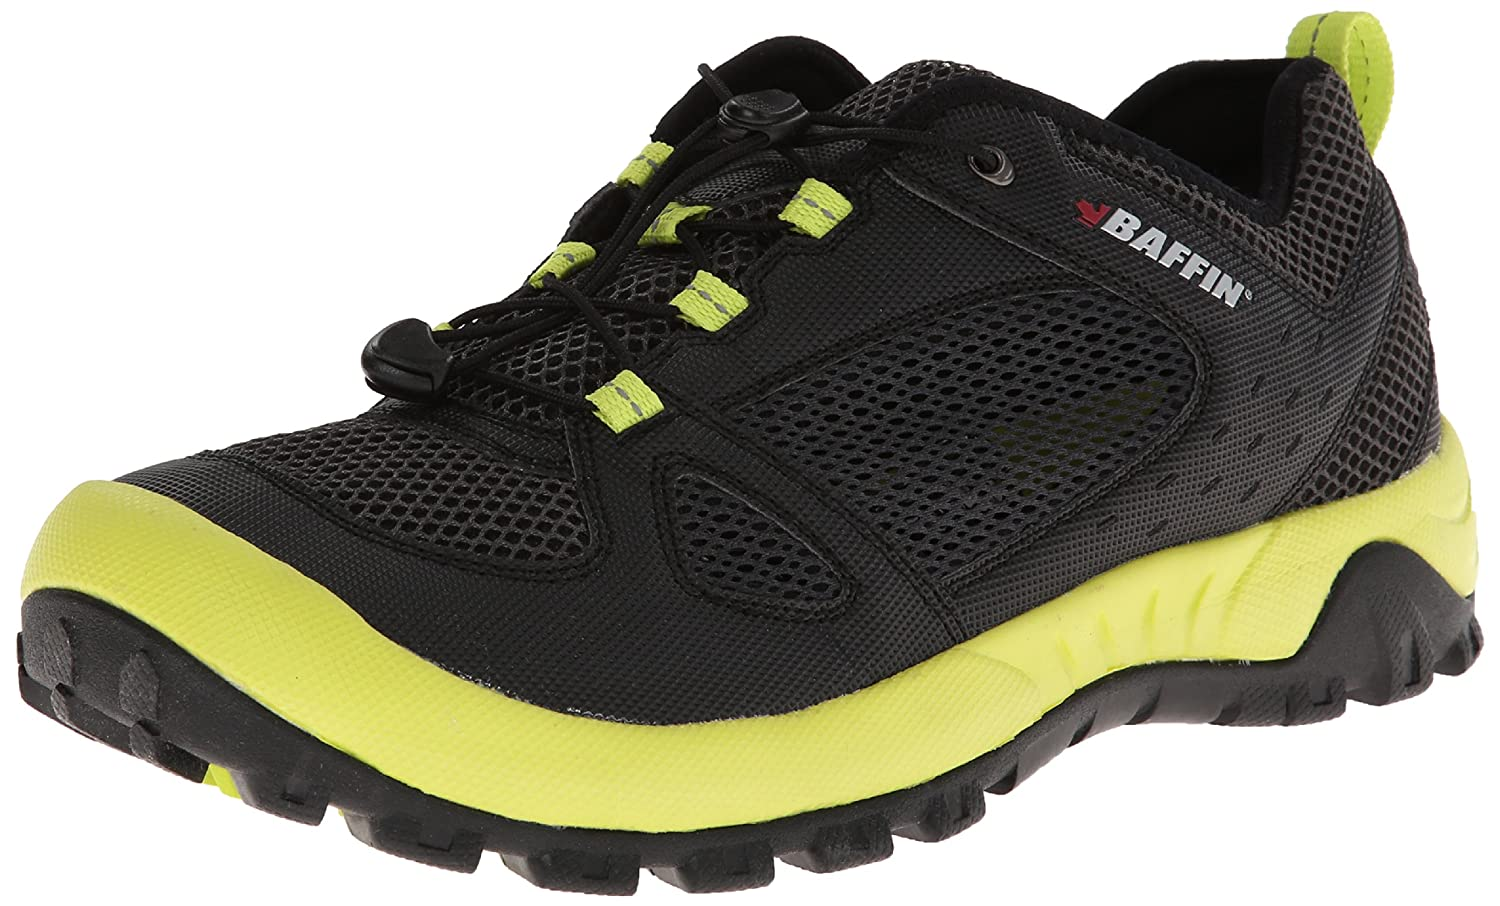 Baffin Men's Amazon Water Shoe B00973KL0A 12 D(M) US|Charcoal/Lime